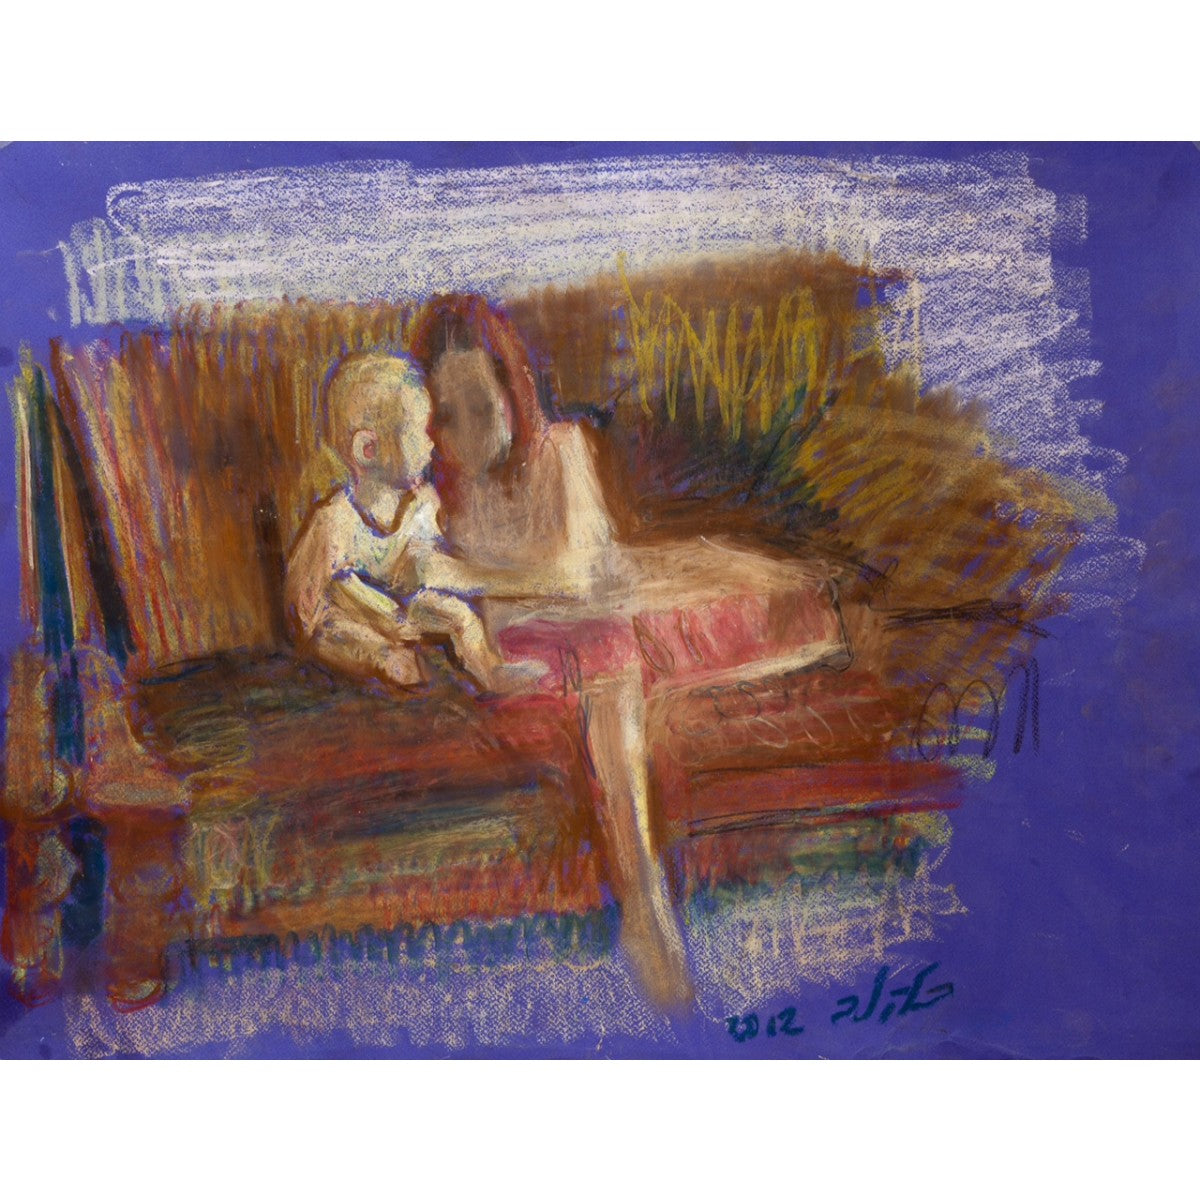 Sisters on a Couch by Leonid Balaklav